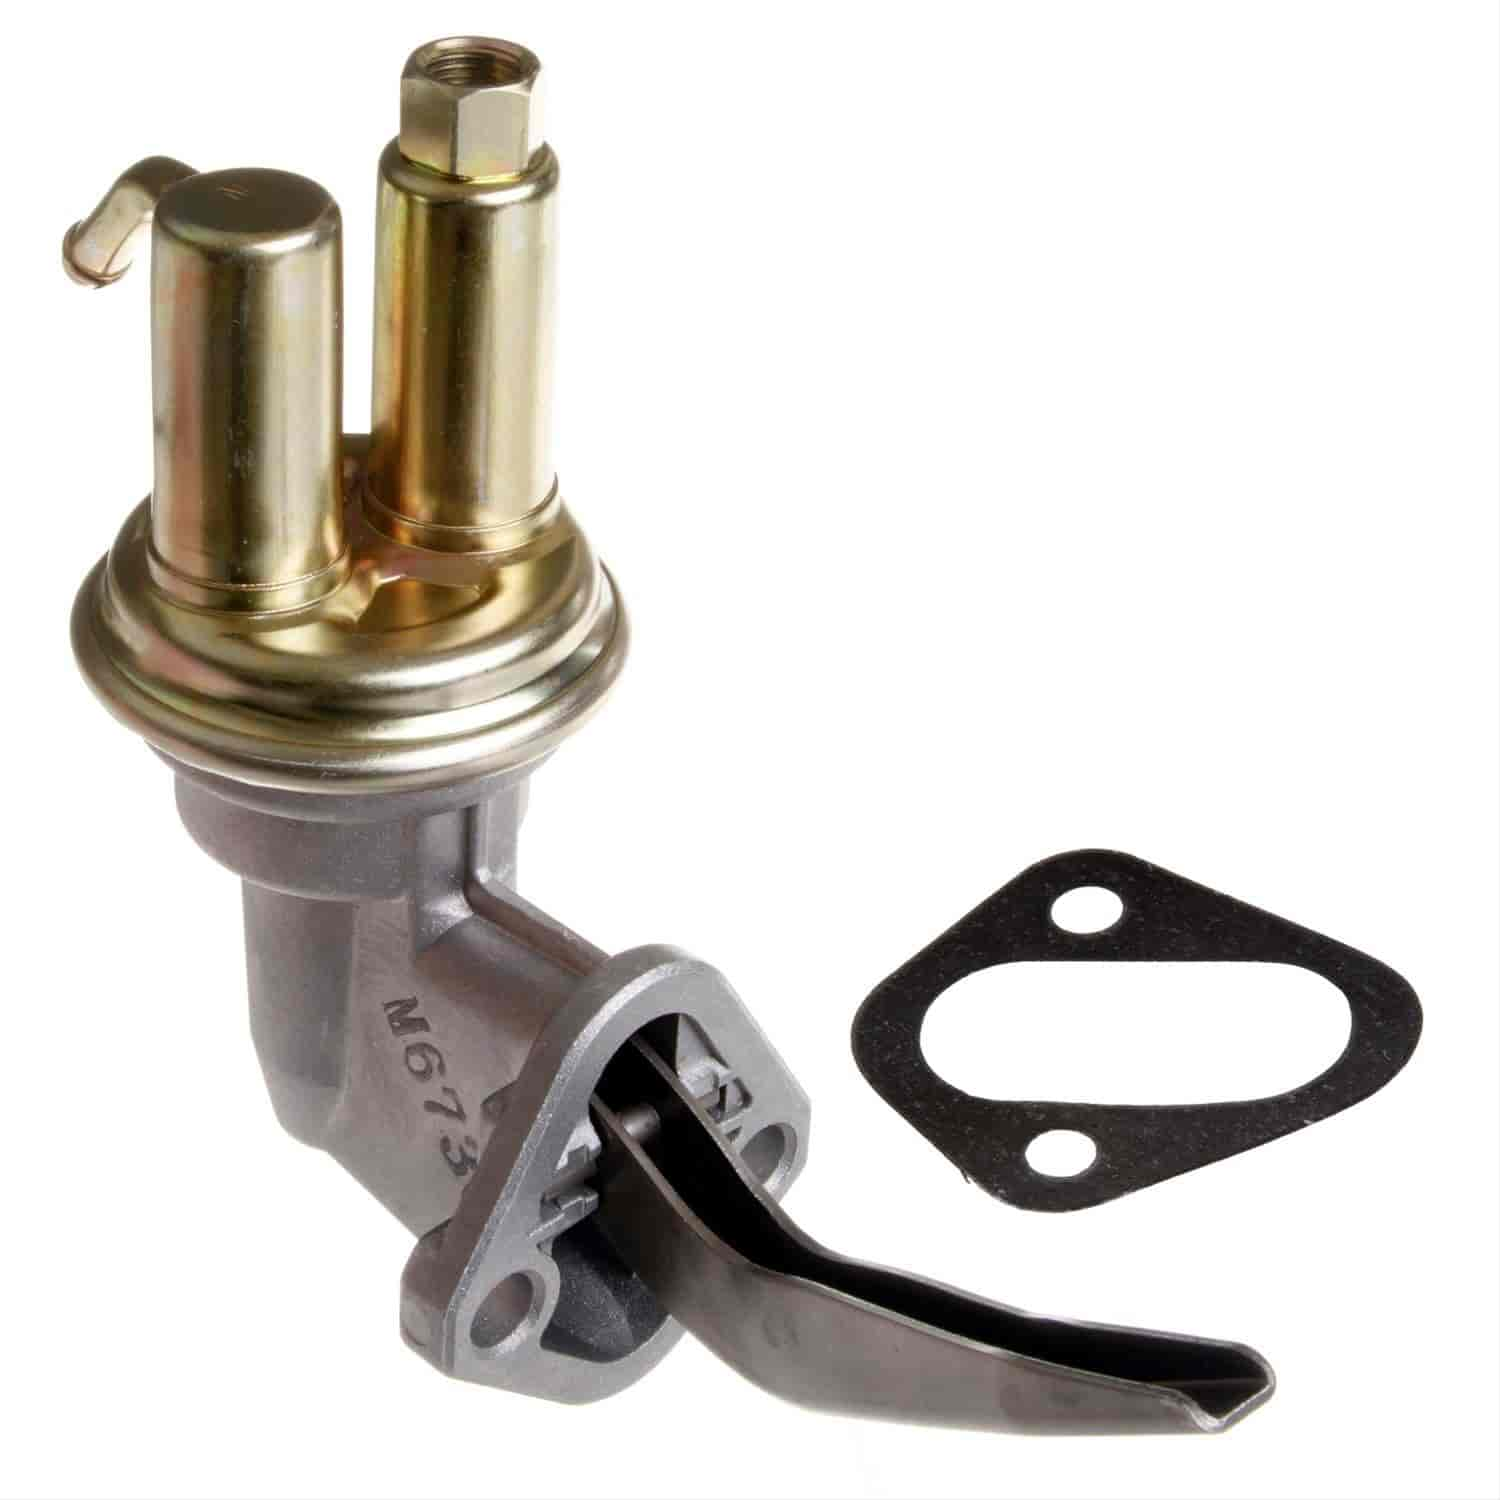 Delphi MF0016 - Delphi Mechanical Fuel Pumps